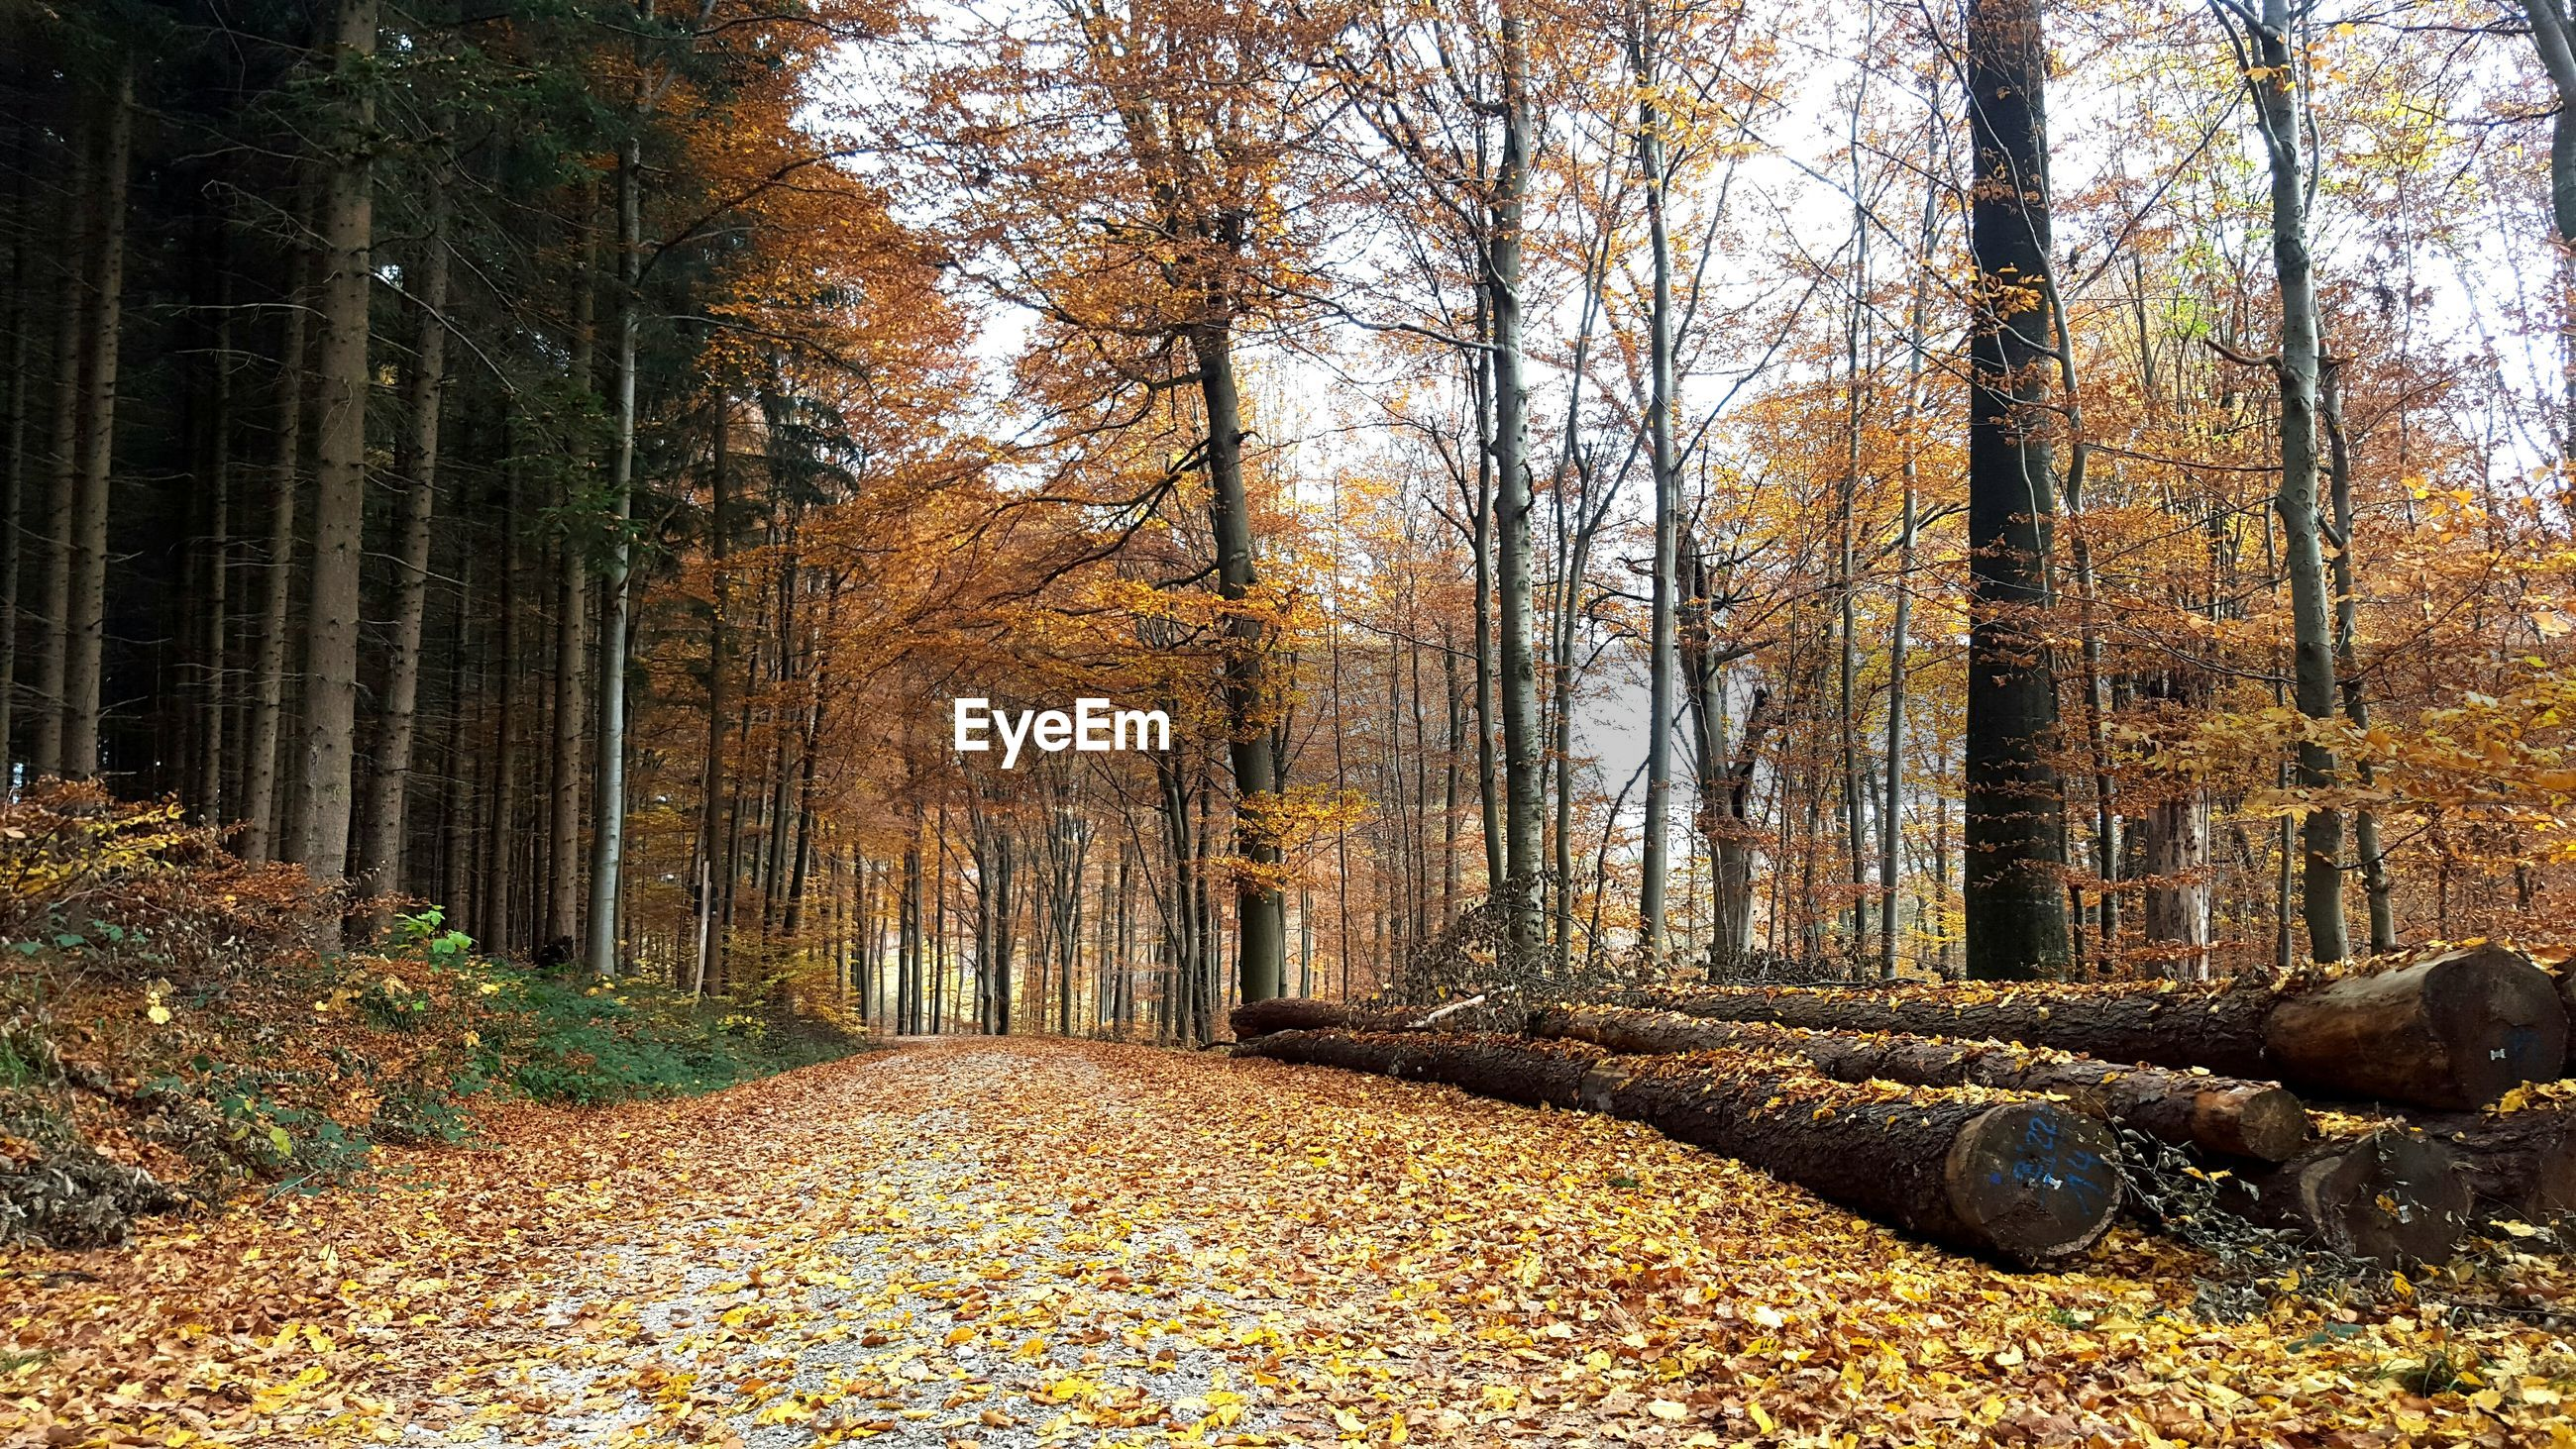 tree, forest, tranquility, autumn, tree trunk, the way forward, nature, tranquil scene, change, woodland, growth, beauty in nature, scenics, leaf, dirt road, landscape, non-urban scene, footpath, season, diminishing perspective